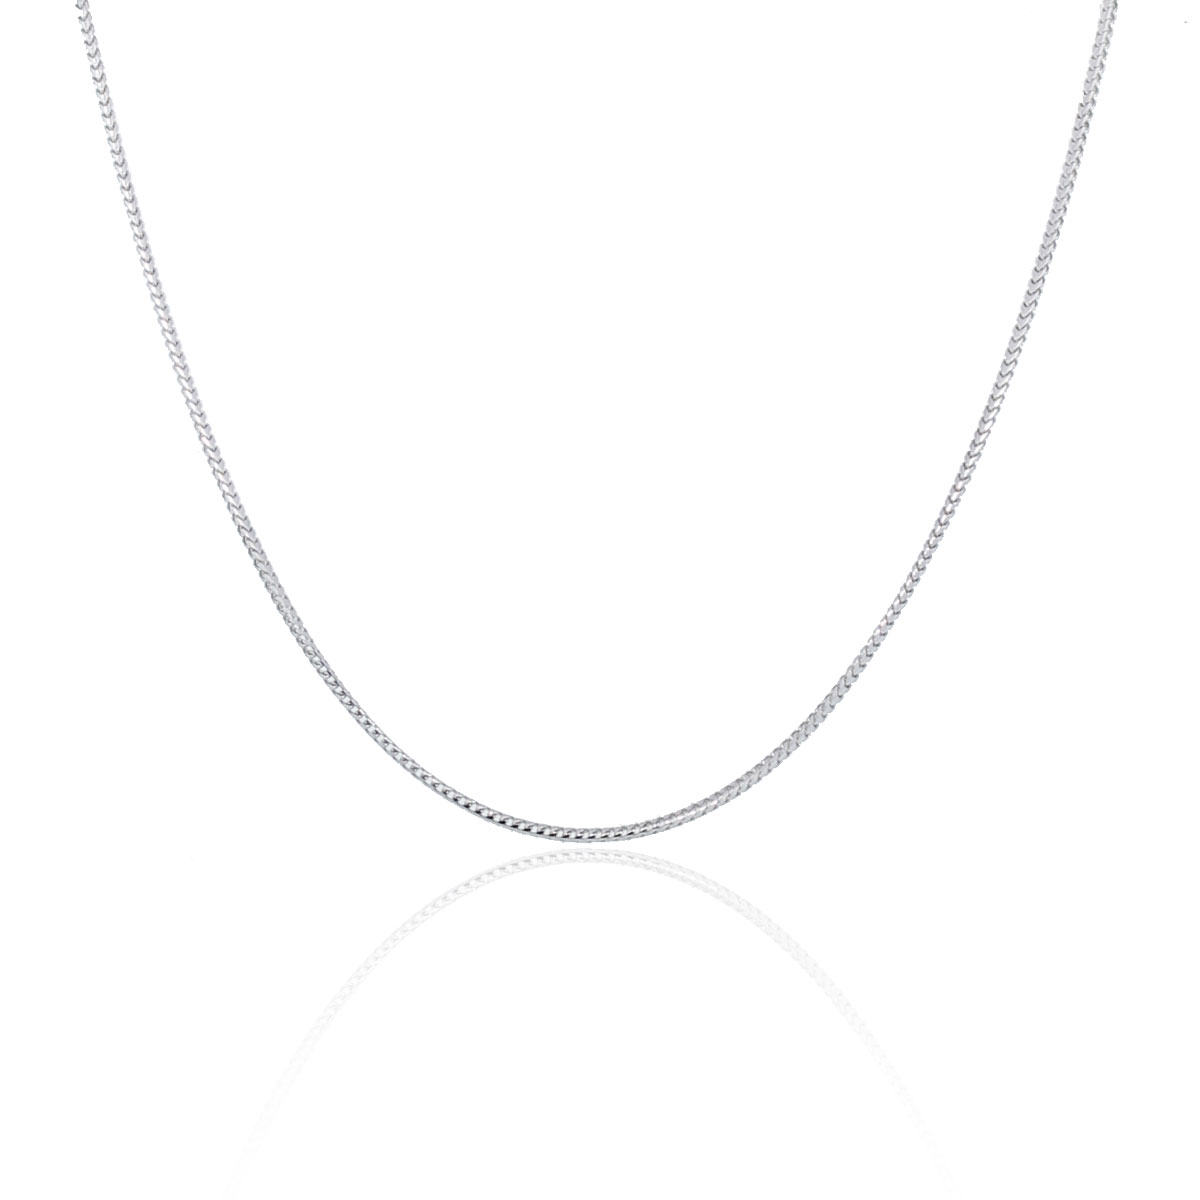 "You are viewing this 14K White Gold 16"" Franco Chain Necklace!"